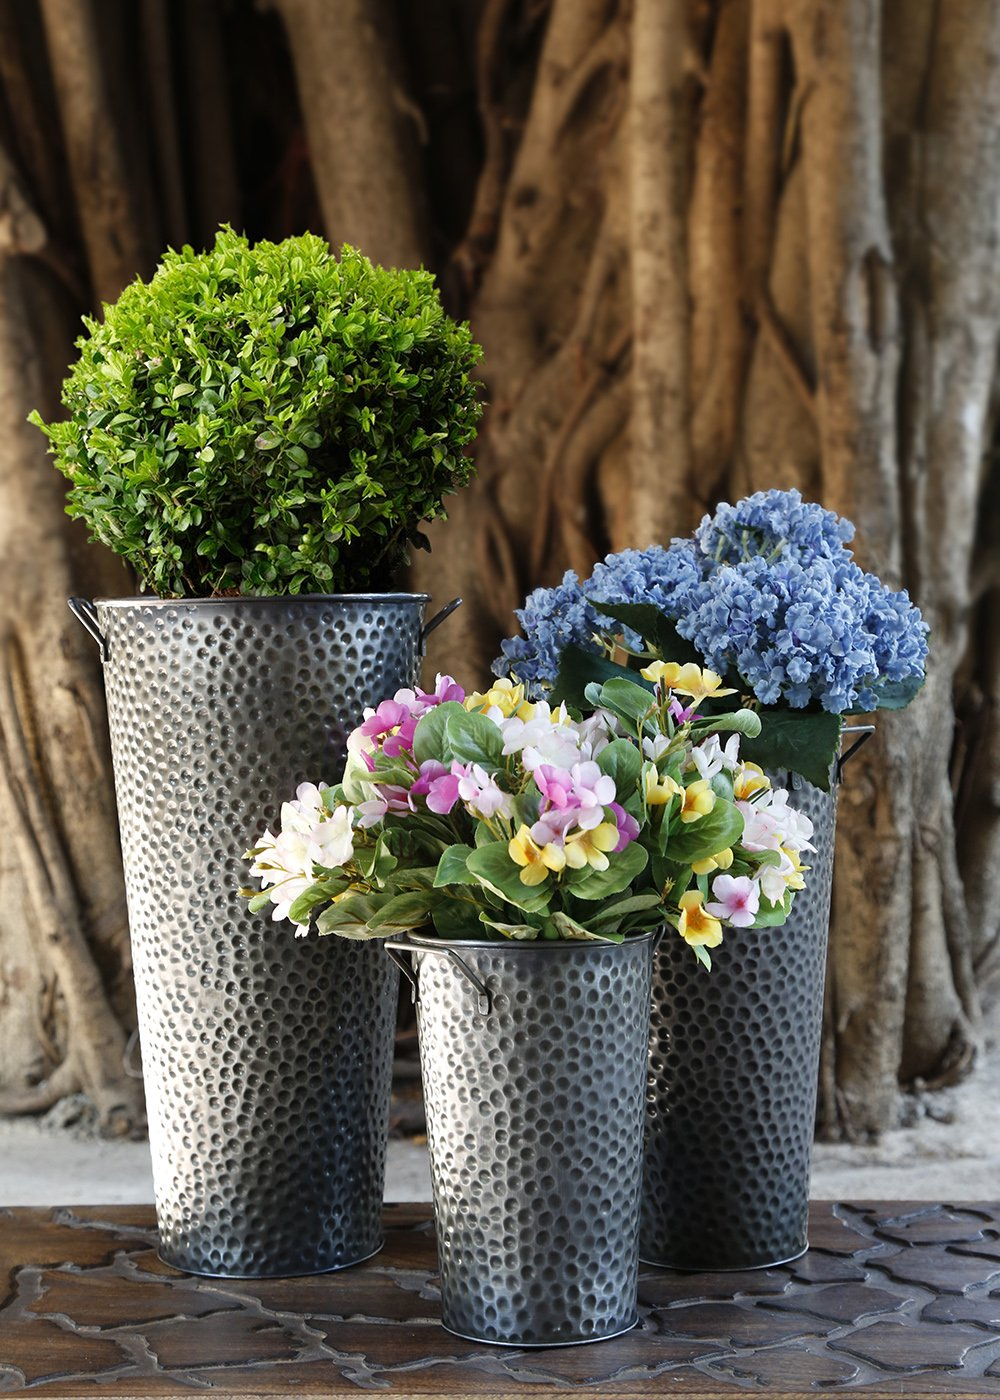 Mothers Day Gift Round Metal Vase Planter French Bucket Set of 3 Indoor Outdoor Flower Pot Tree Holder Storage Basket Bin Containers Rack For Gardening Decor Accessories